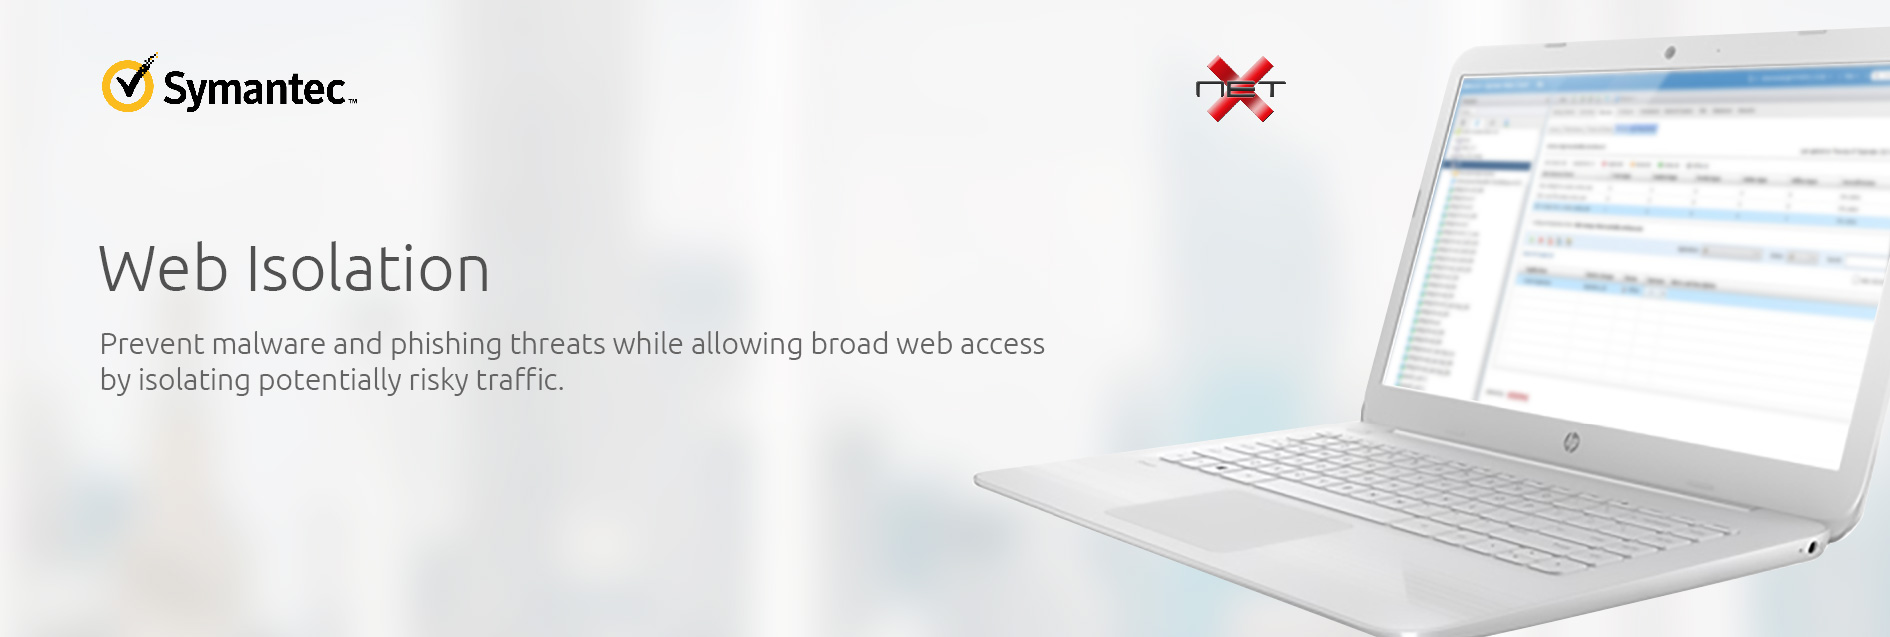 netx-symantec-Web-Isolation-banner